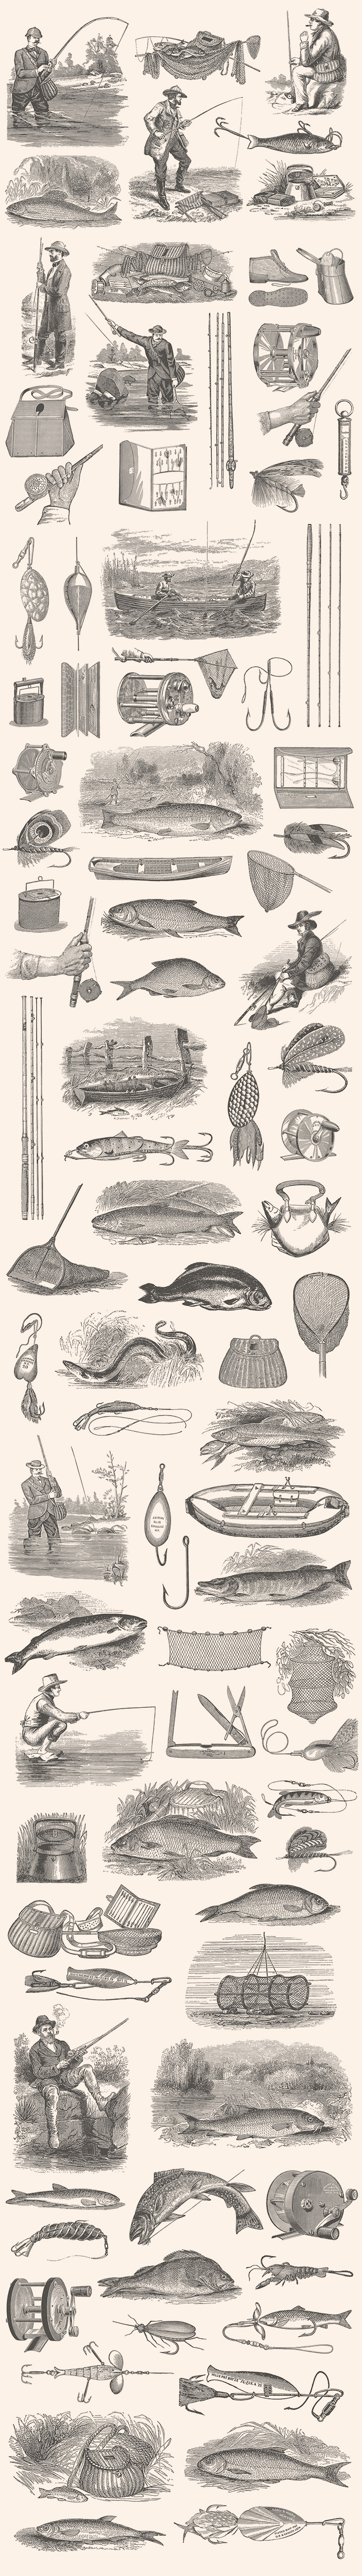 Fishing – Vintage Illustration Set by Graphic Goods 05_2